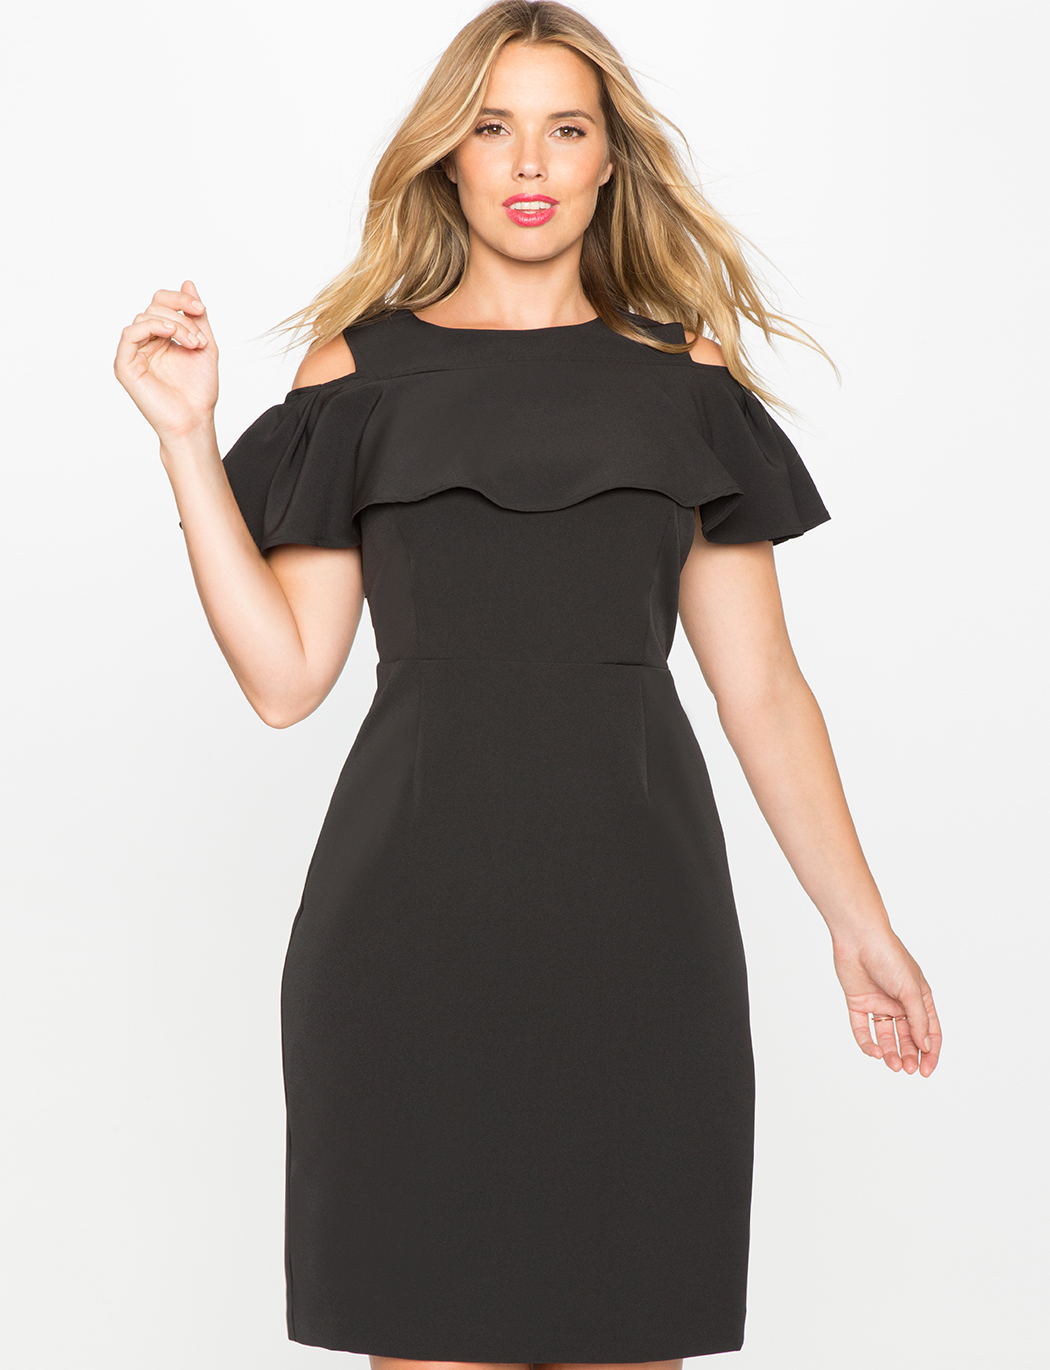 Cold Shoulder Dress with Ruffle | Women\'s Plus Size Dresses | ELOQUII